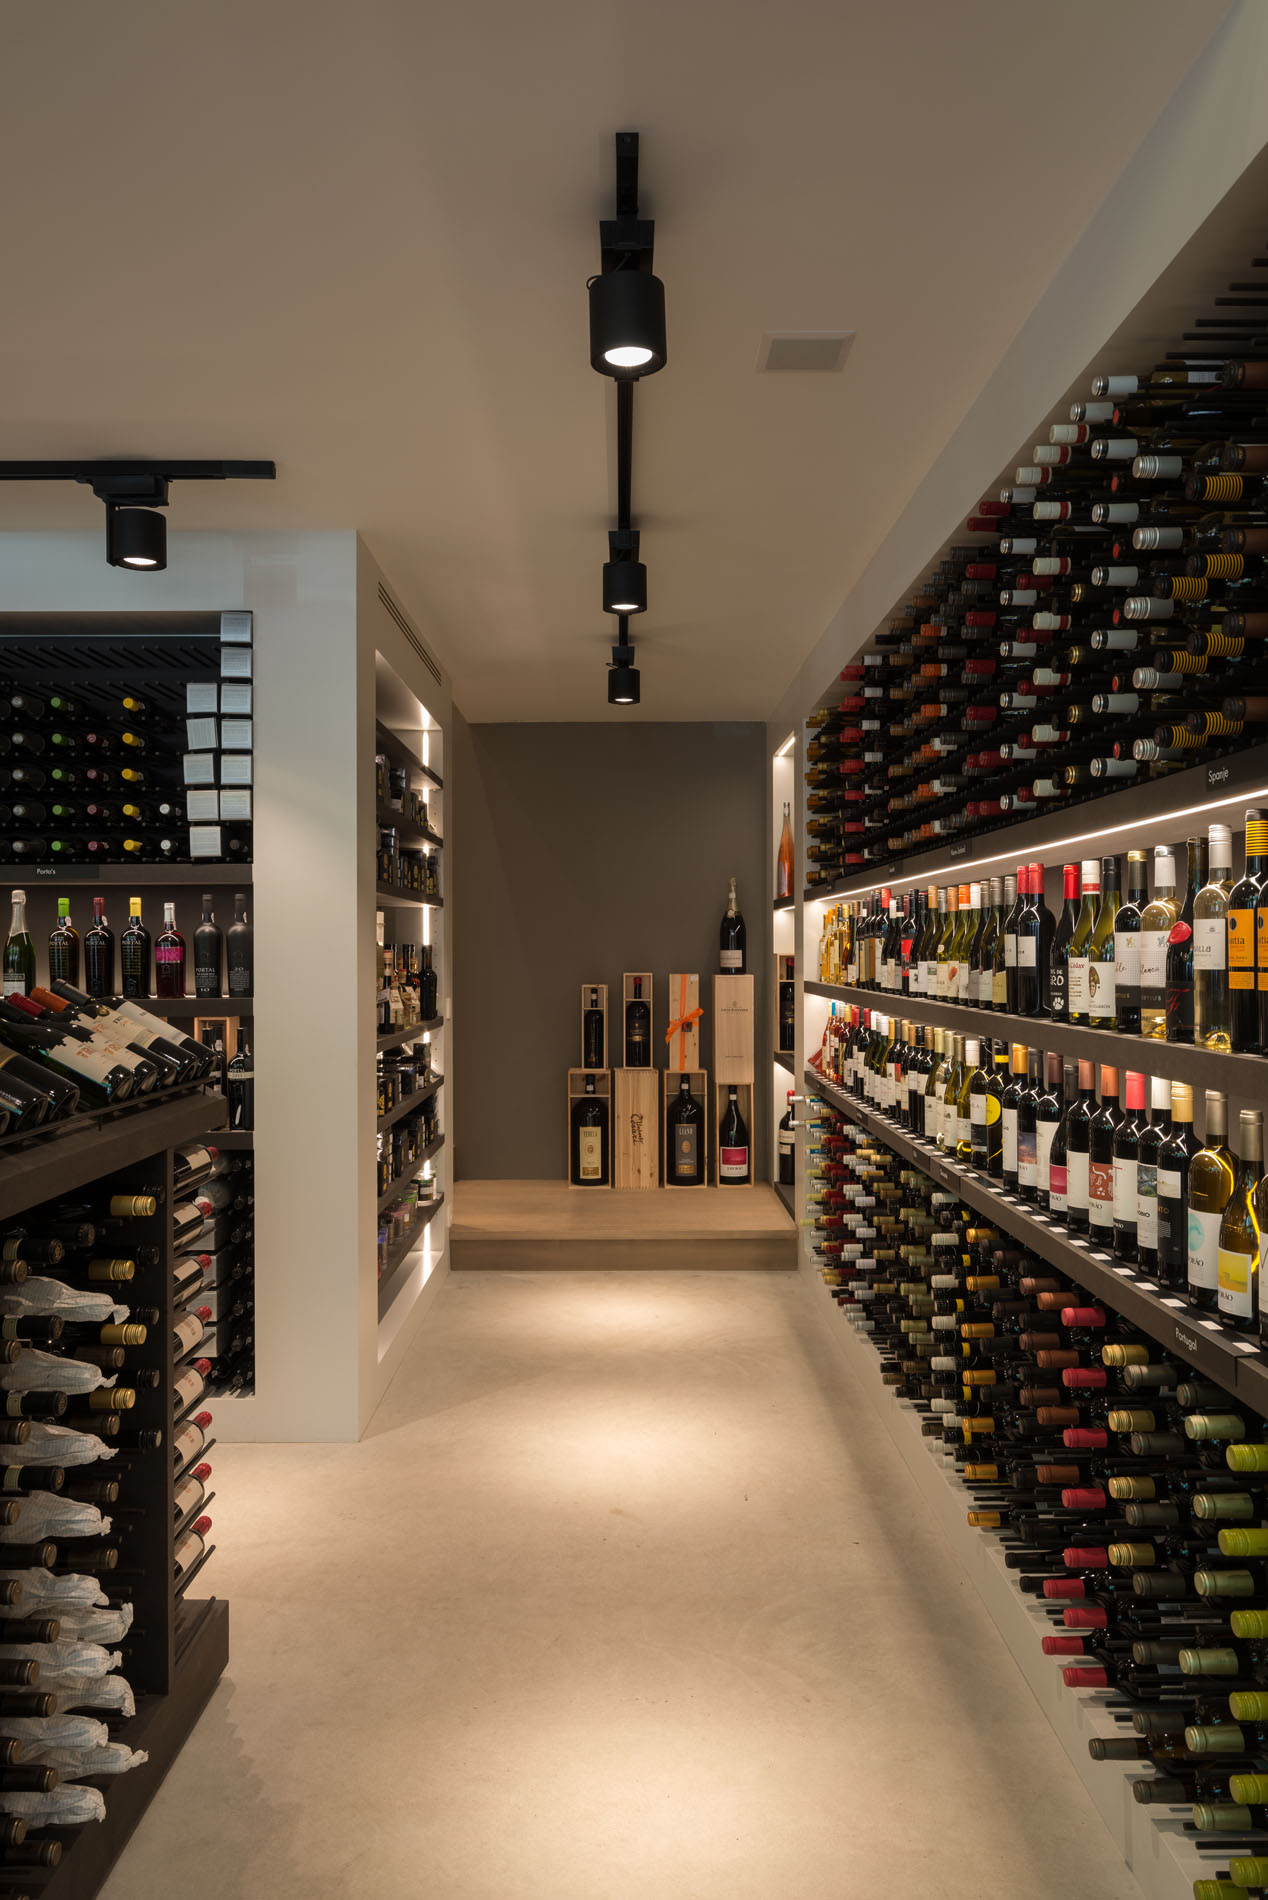 Chacalli Wines, Antwerpen (BE) image 8